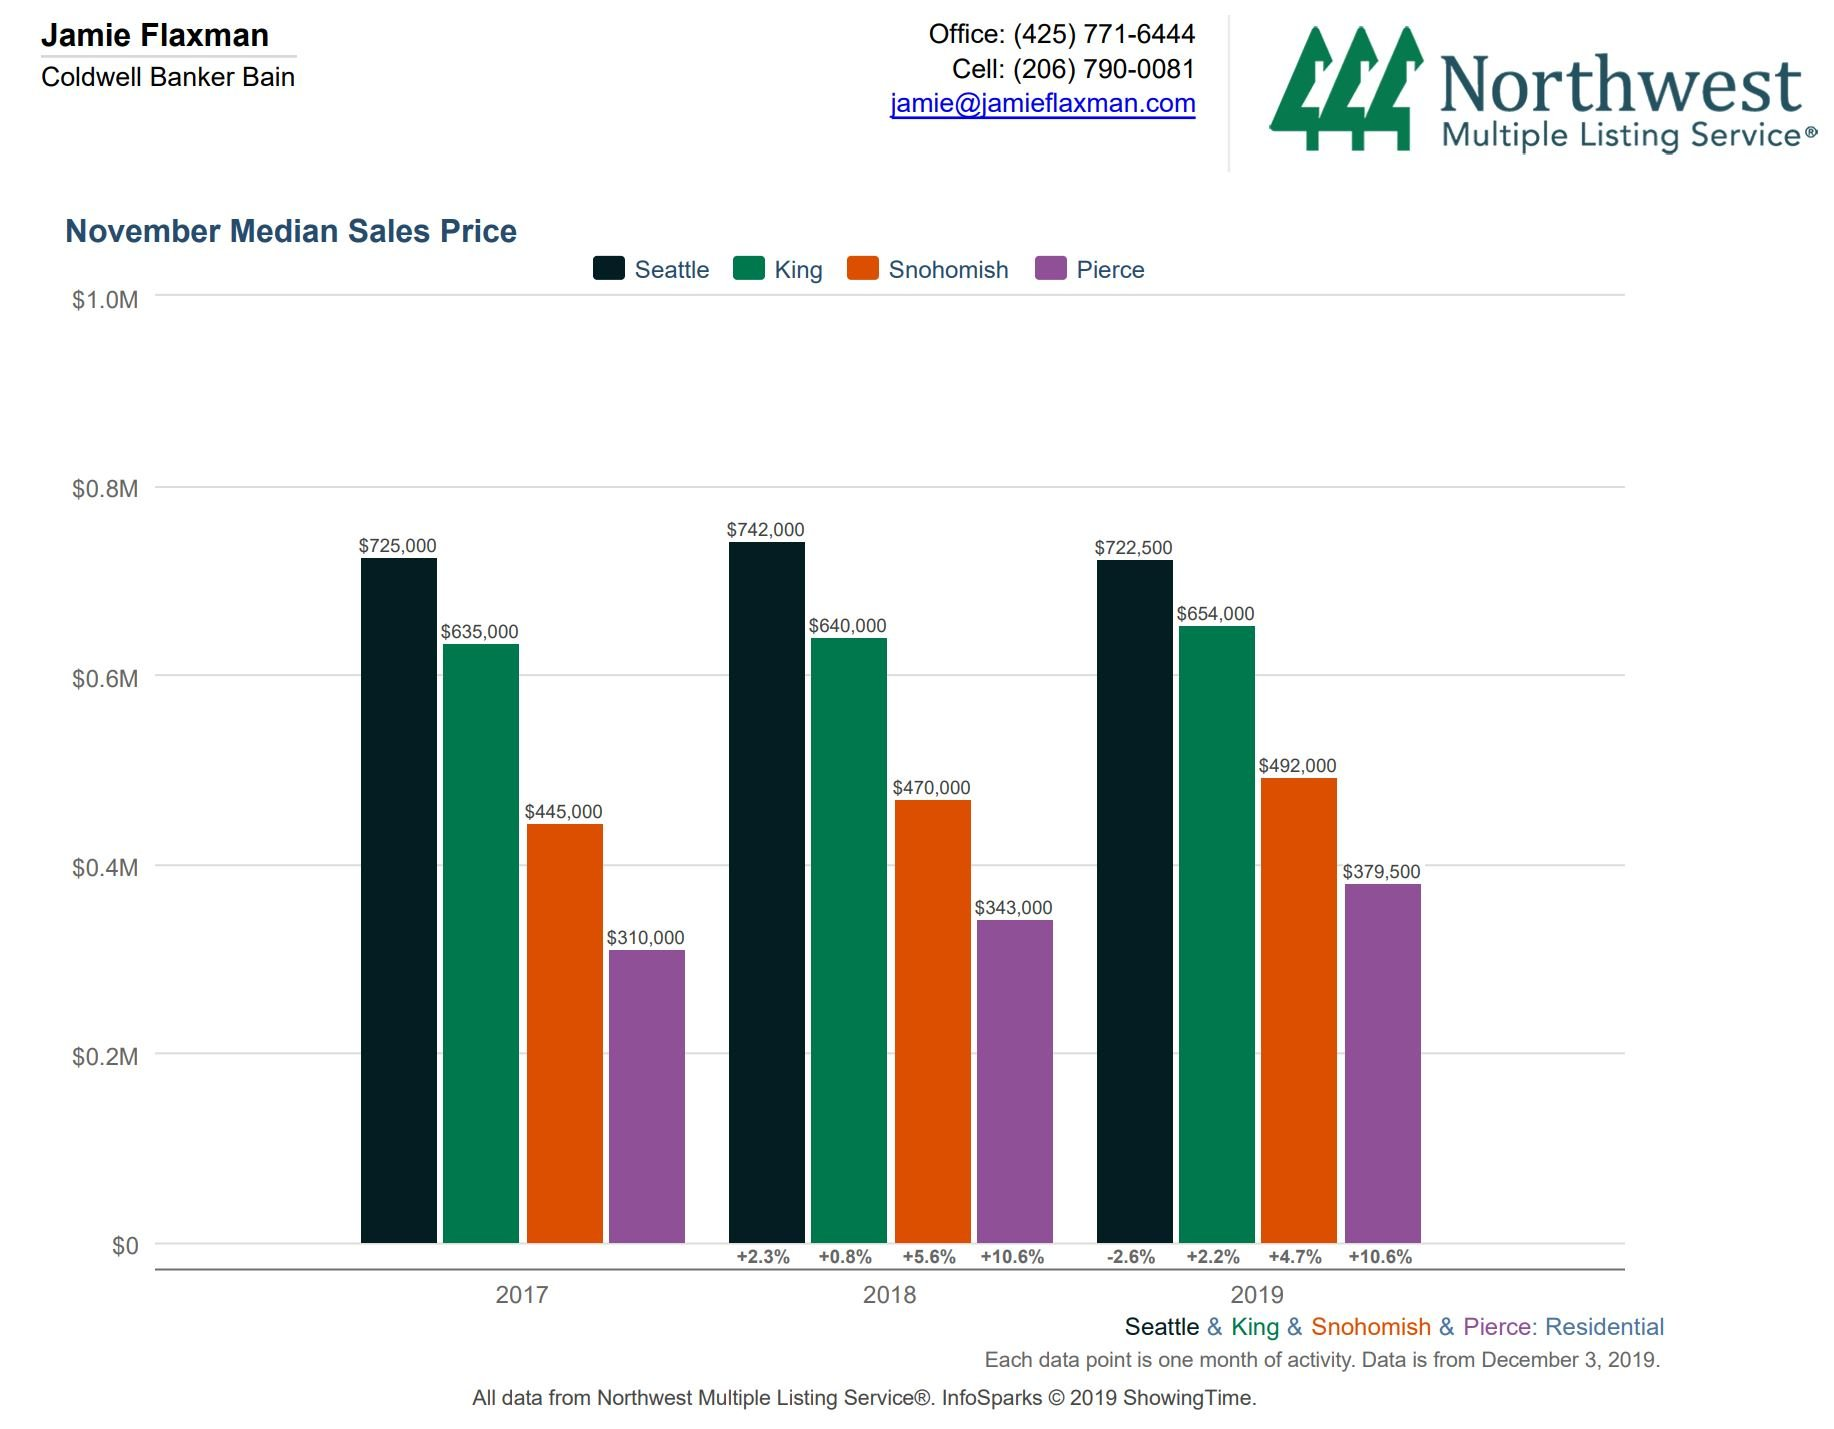 November median sales price